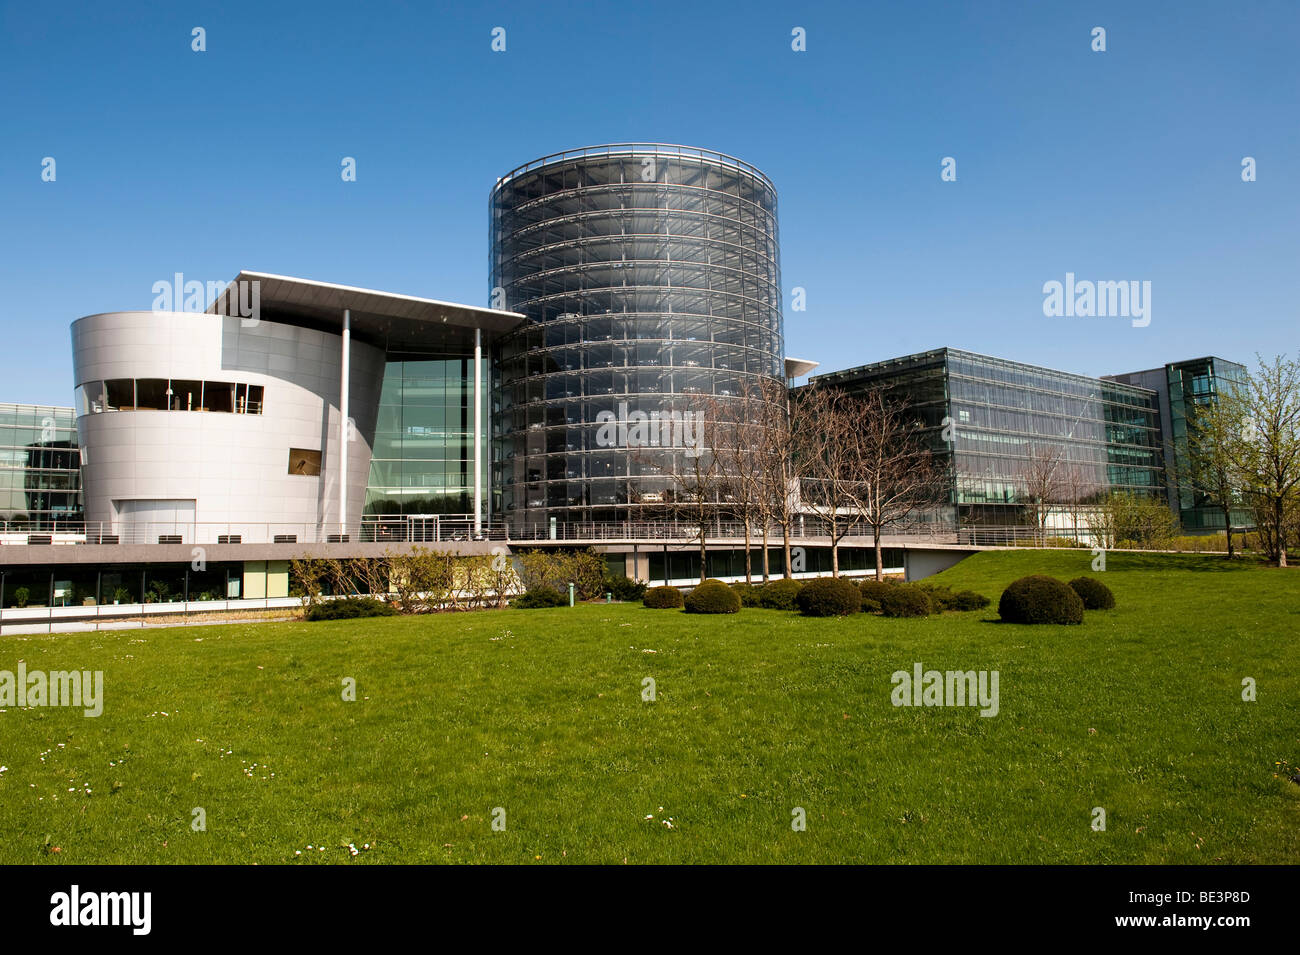 Glass manufactory, automobile factory for the VW Phaeton car, Dresden, Saxony, Germany, Europe - Stock Image